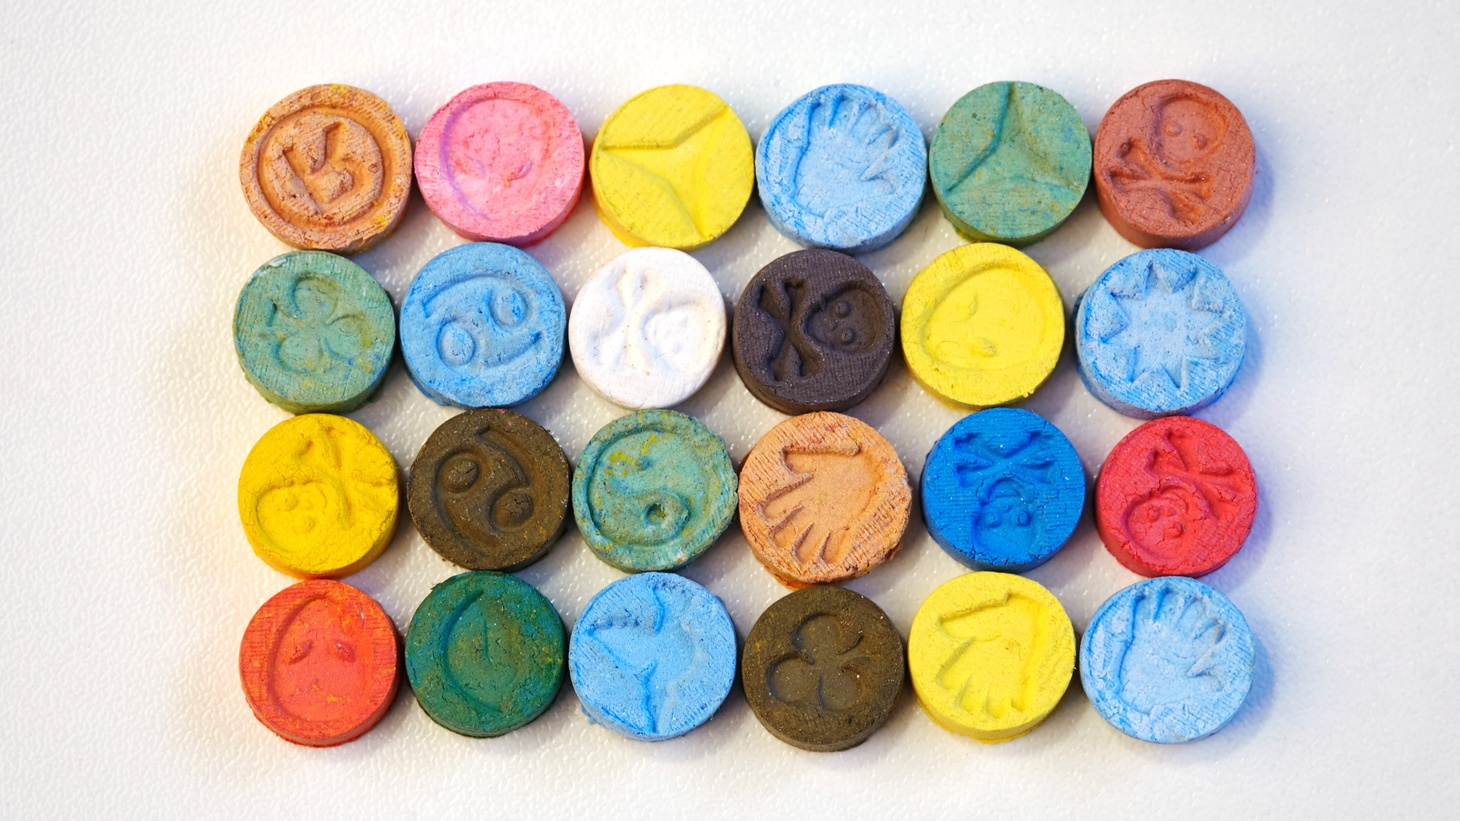 """Brian Earp, researcher and co-author of """"Love Drugs: The Chemical Future of Relationships,"""" joins Life Examined to talk about the range of positive effects that MDMA, also known as ecstasy or molly, have on relationships."""